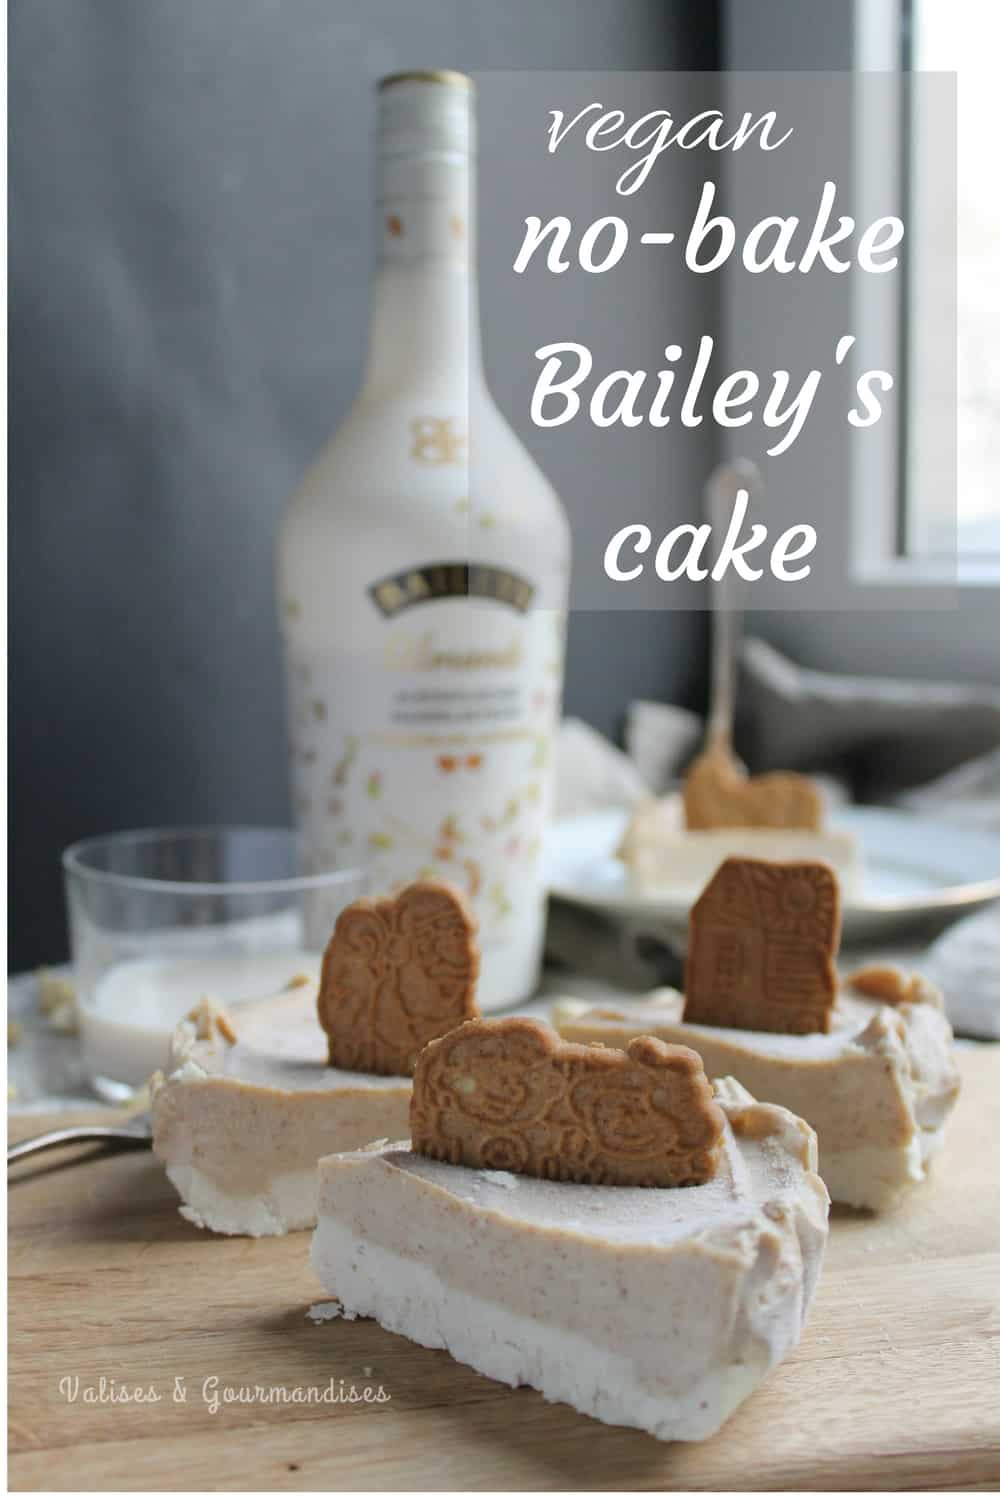 Vegan no-bake Bailey's cake